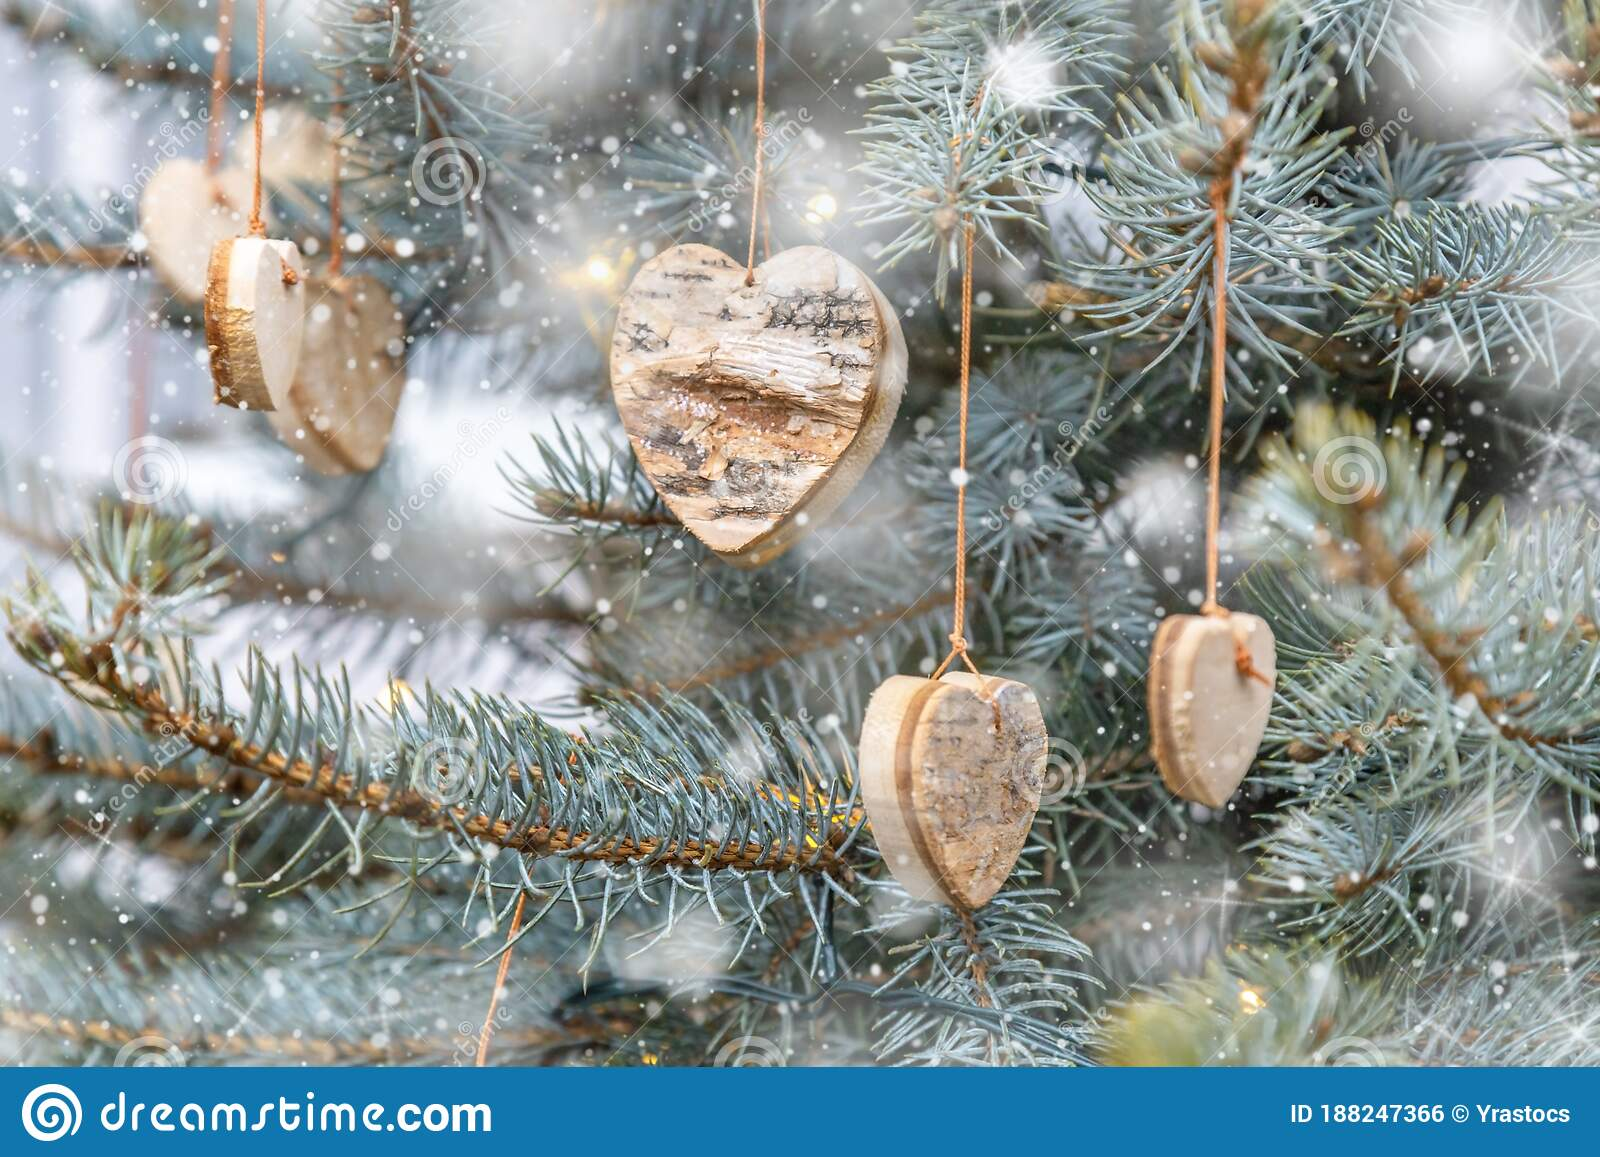 Wooden Handmade Christmas Tree Decorations In Shape Of Heart Hang On Green Christmas Tree Falling Snow Stock Photo Image Of Pine Snow 188247366